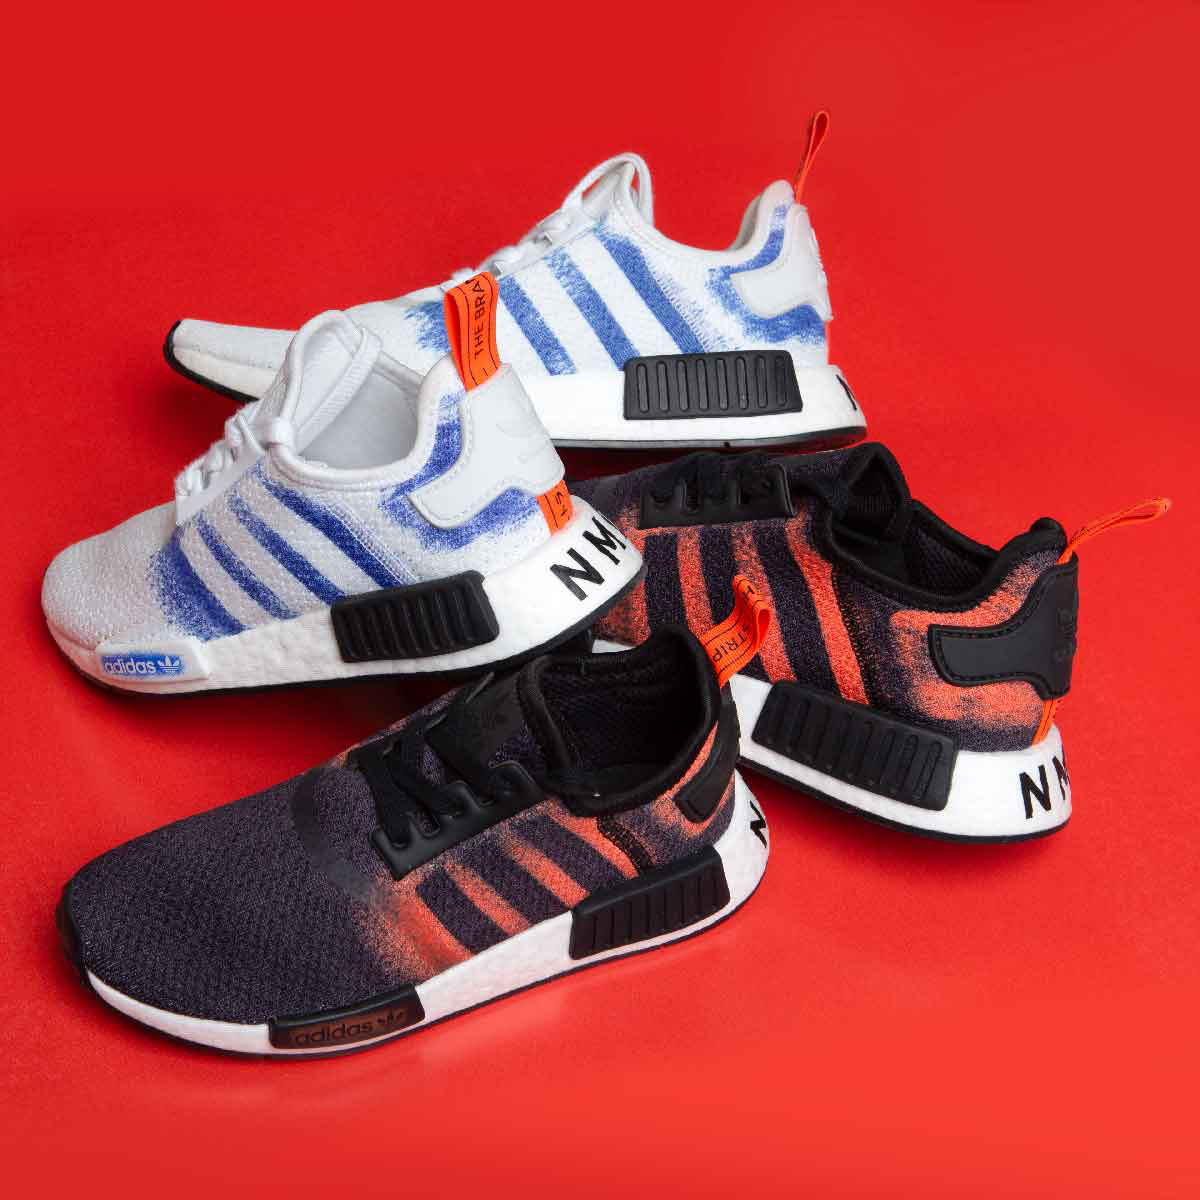 adidas-nmd-stencil-sneakers-1